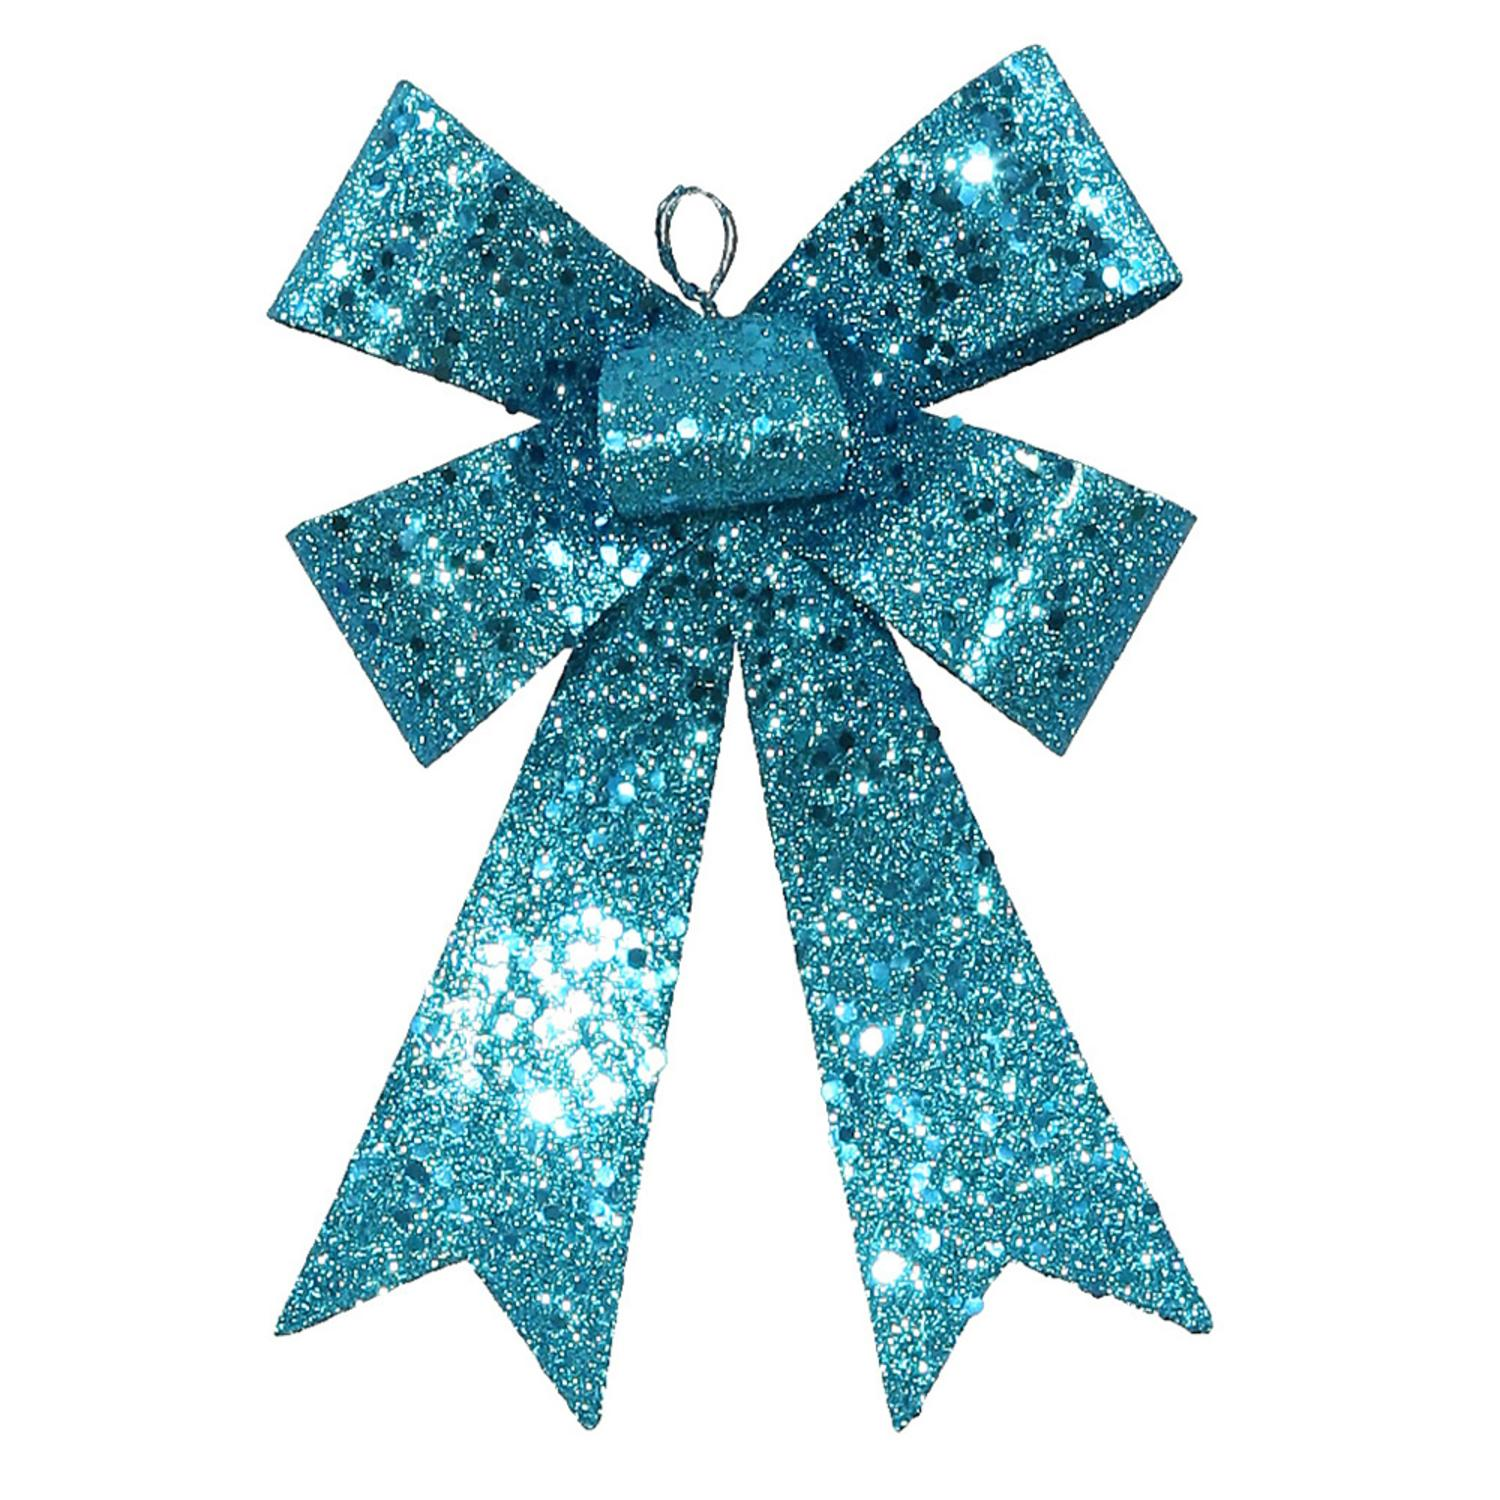 "7"" Turquoise Blue Sequin and Glitter Bow Christmas Ornament"